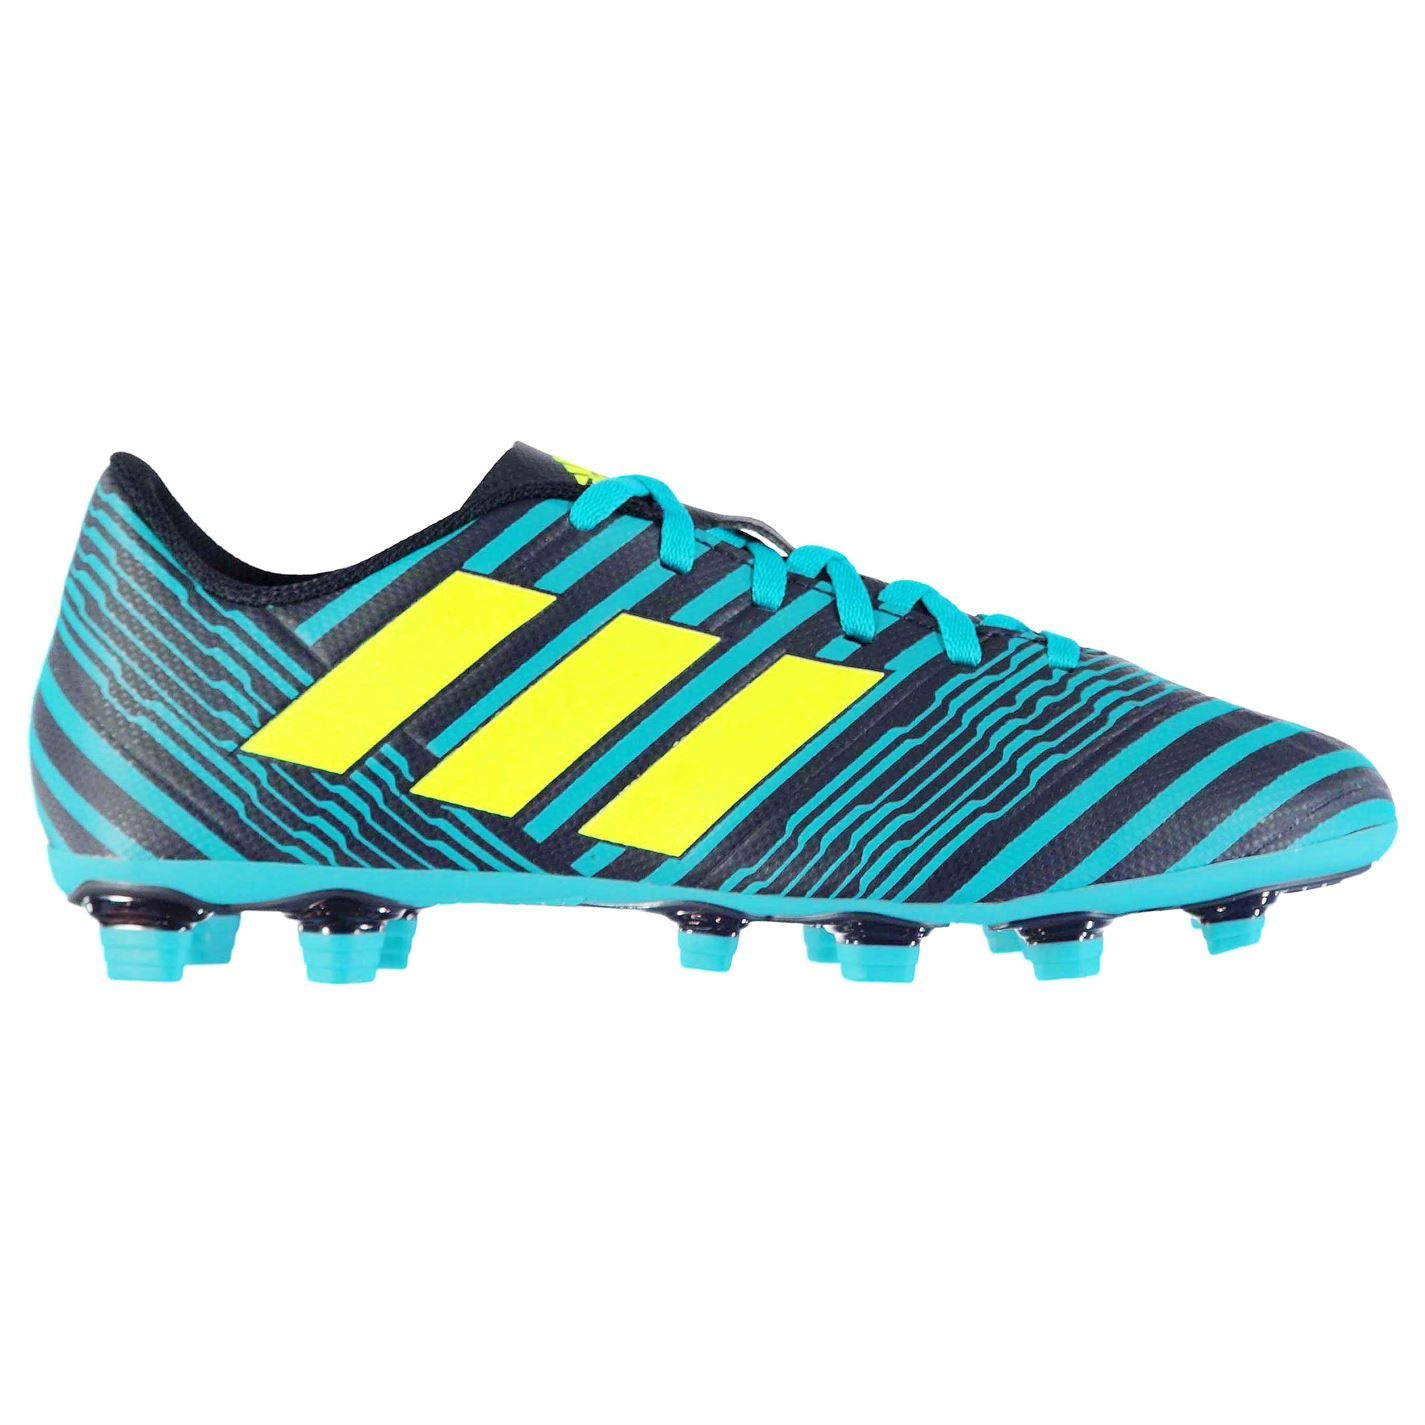 be9caeb7 ... adidas Nemeziz 17.4 FG Firm Ground Football Boots Mens Blue Soccer  Shoes Cleats ...